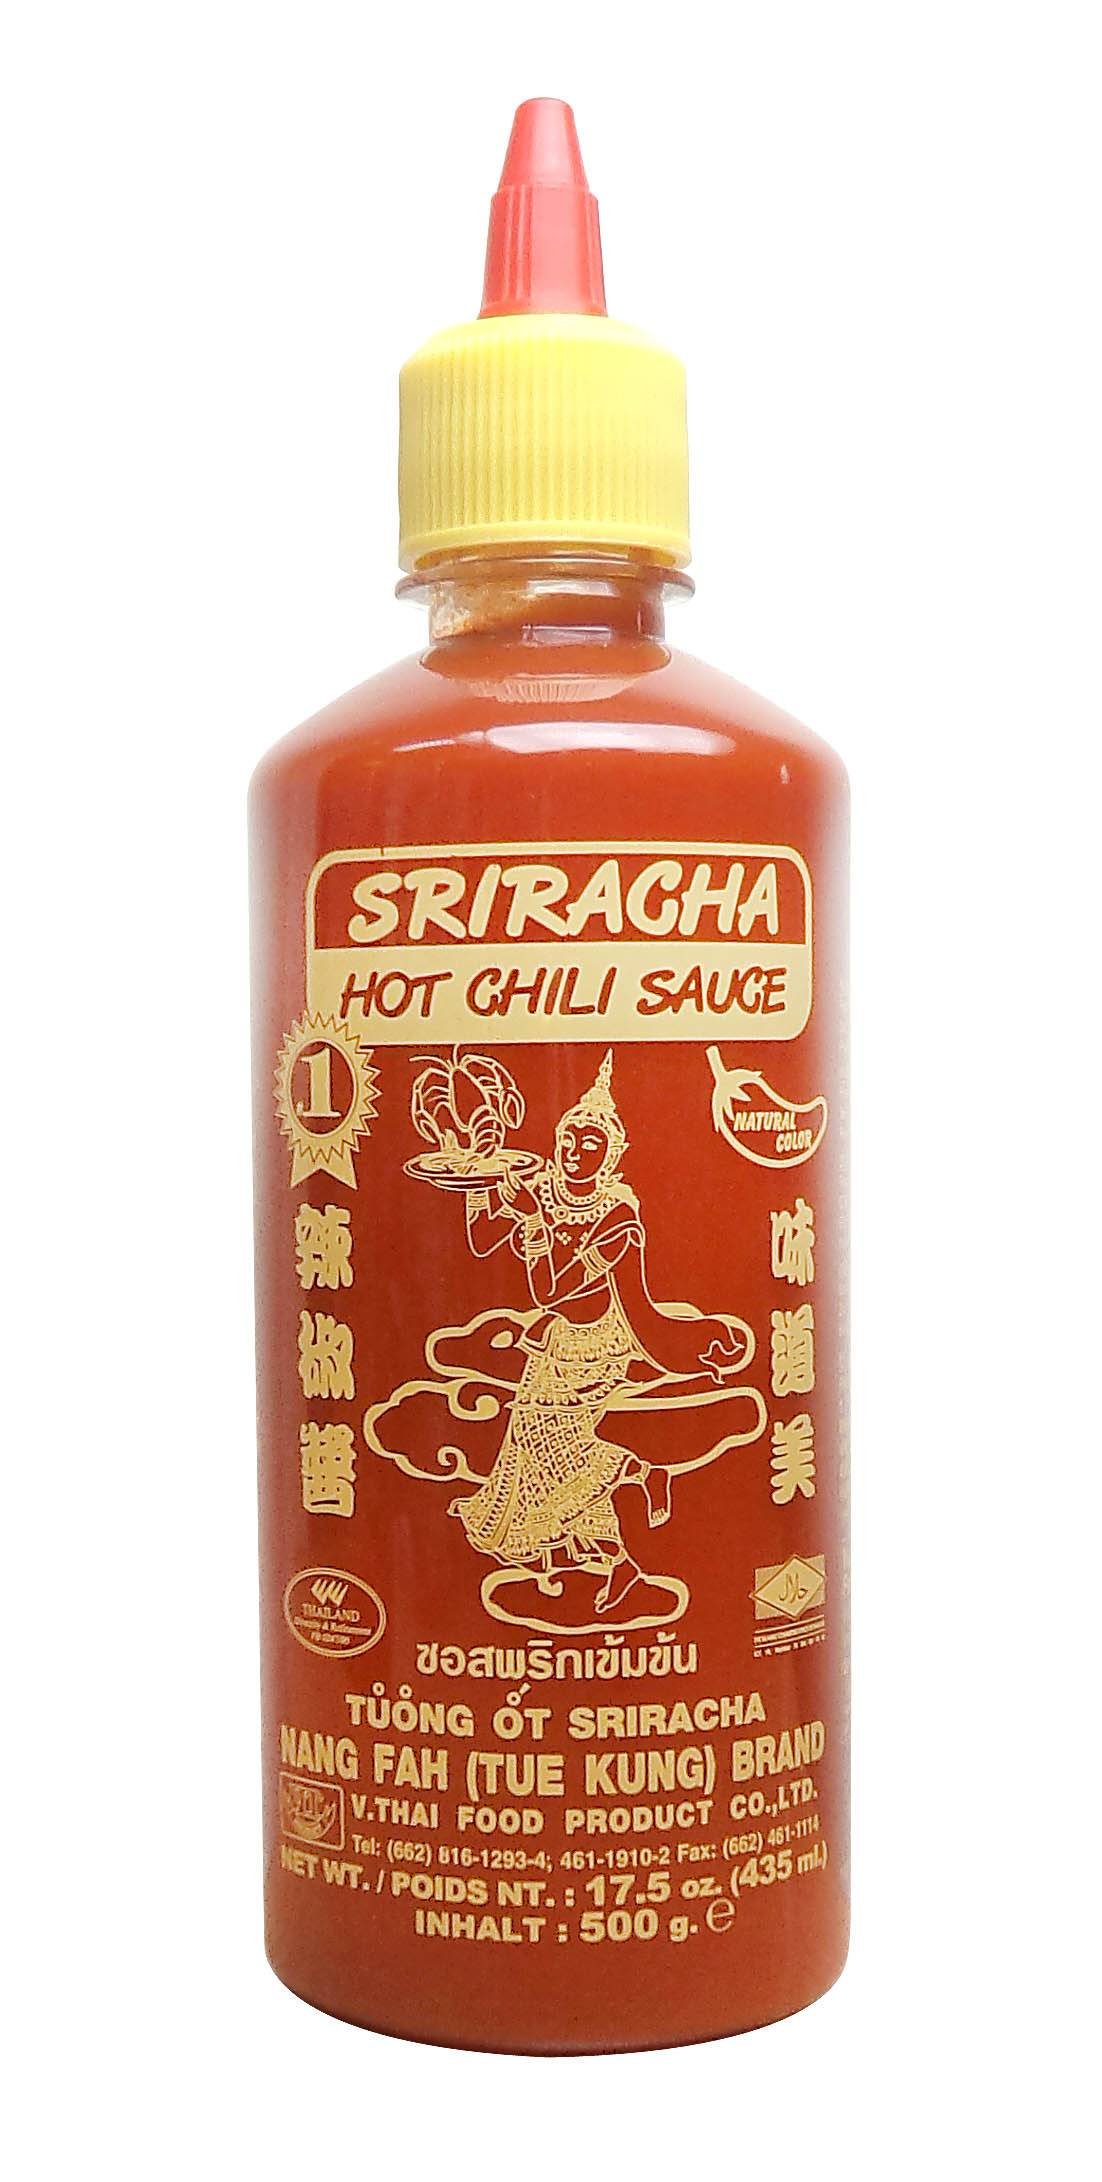 Thai Sriracha hot chili sauce